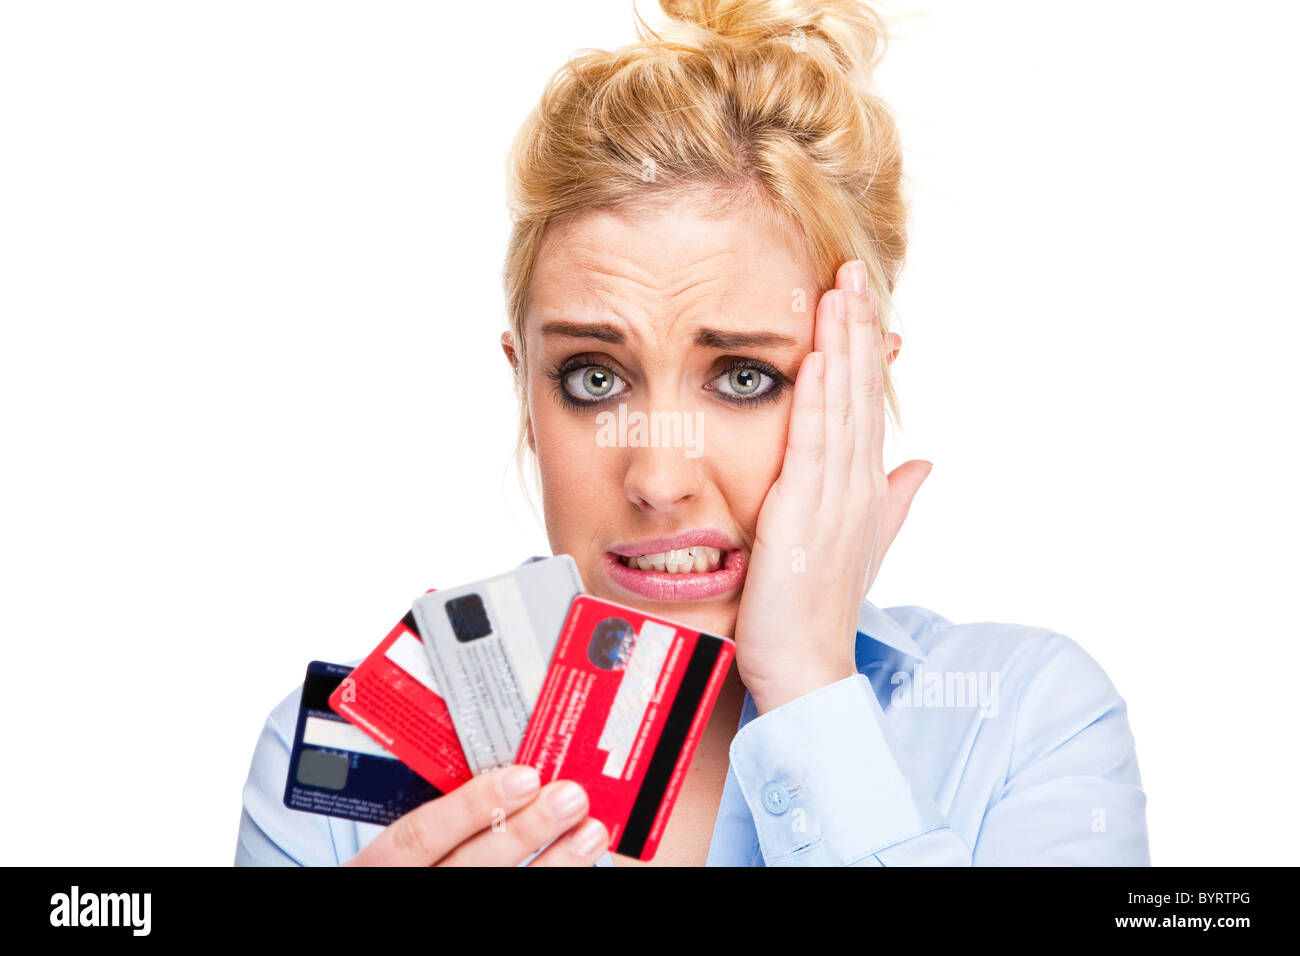 Attractive young woman with debt and money worries - looking stressed holding credit cards - Stock Image